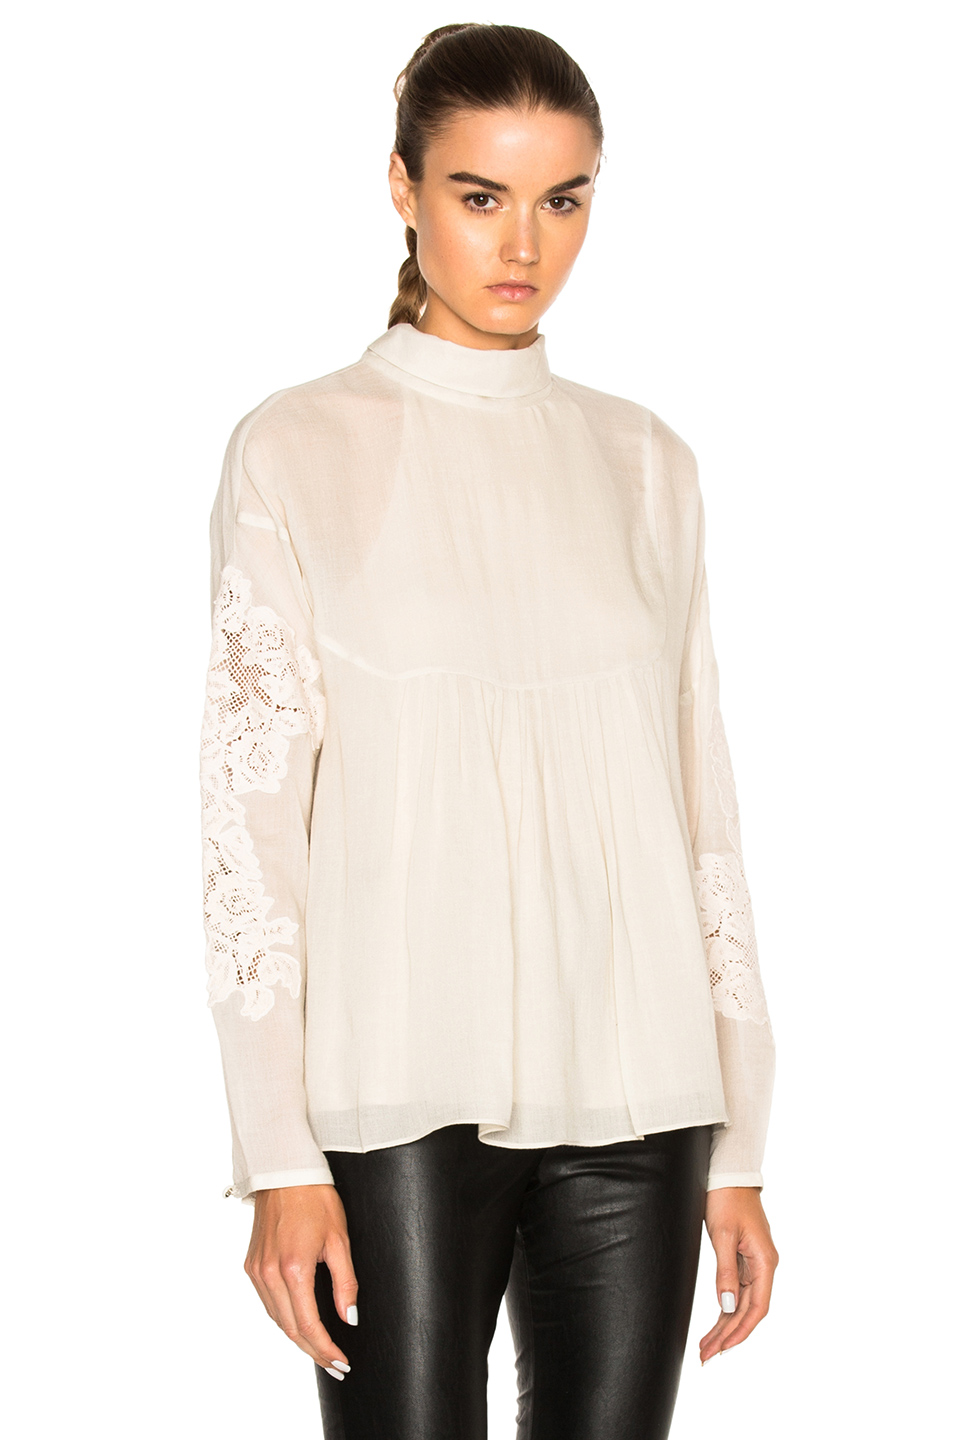 Tibi Embroidered Top in Neutrals